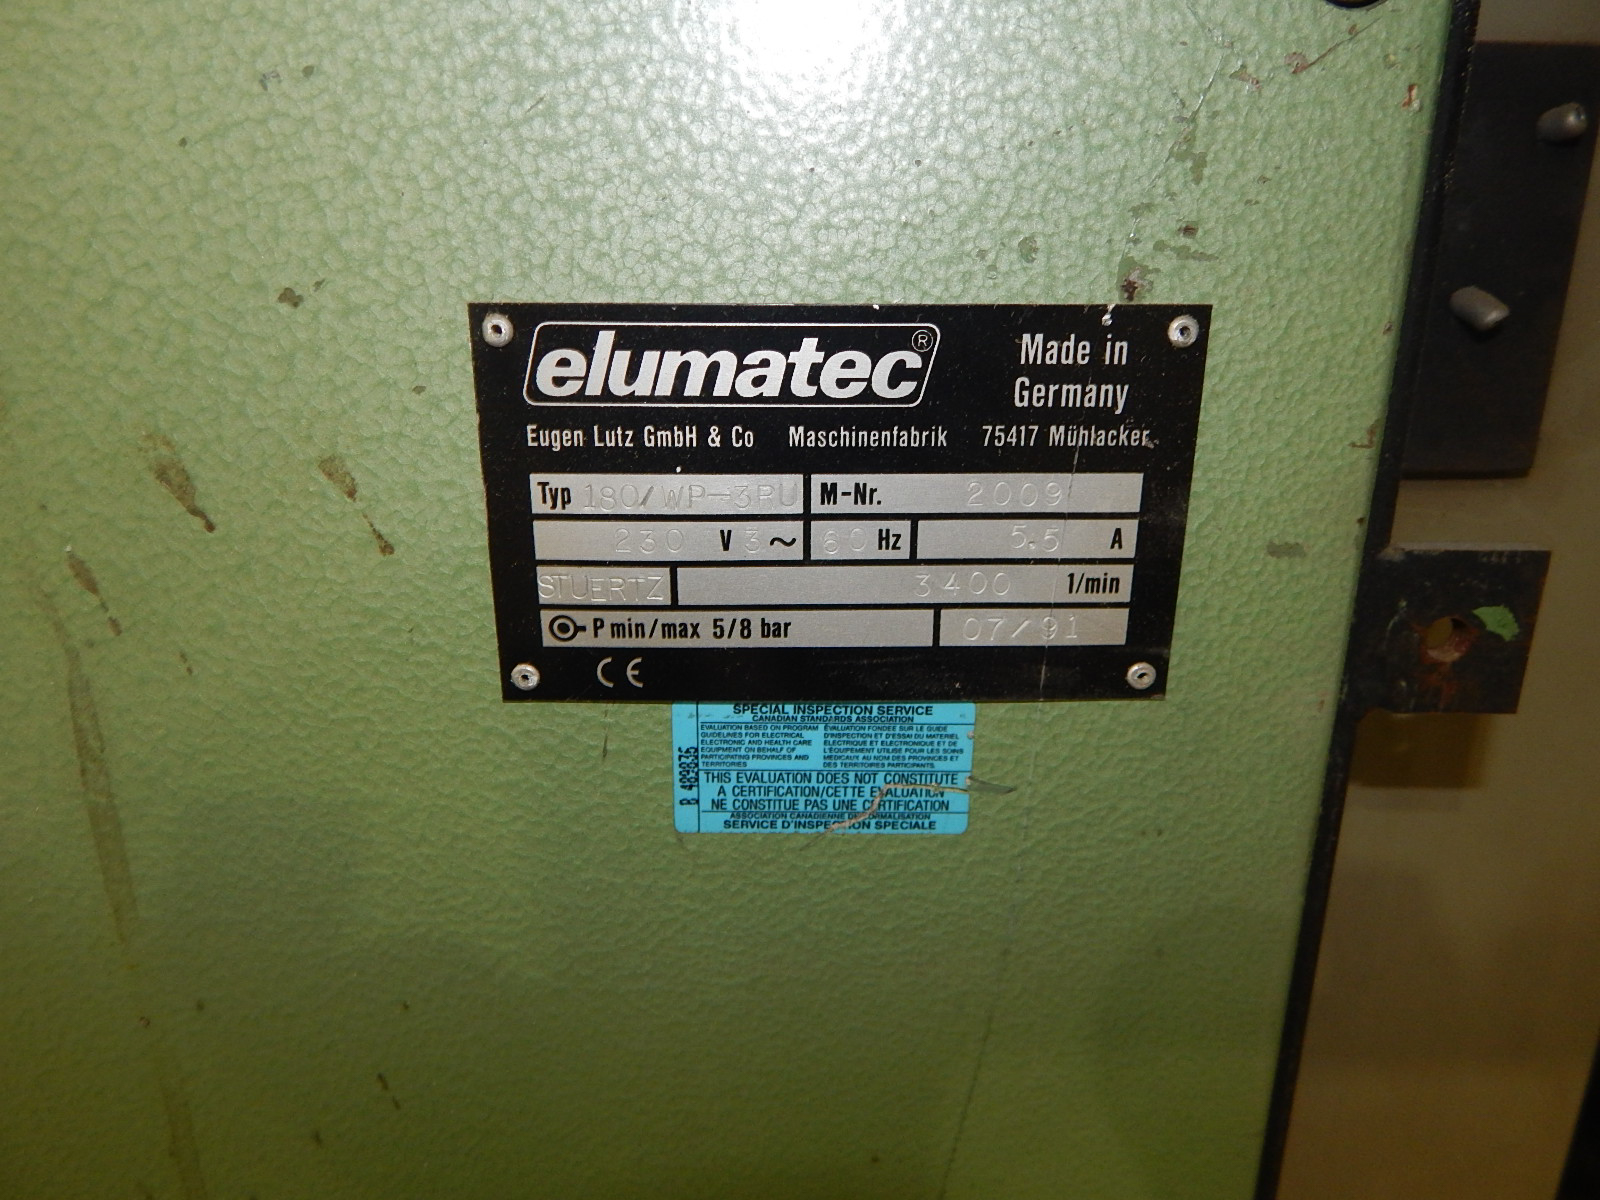 ELUMATEC 180/WP-3RU SINGLE HEAD CORNER CLEANER WITH 3,400 RPM, 230V/3PH/60HZ, S/N: 2009 (CI) - Image 6 of 6